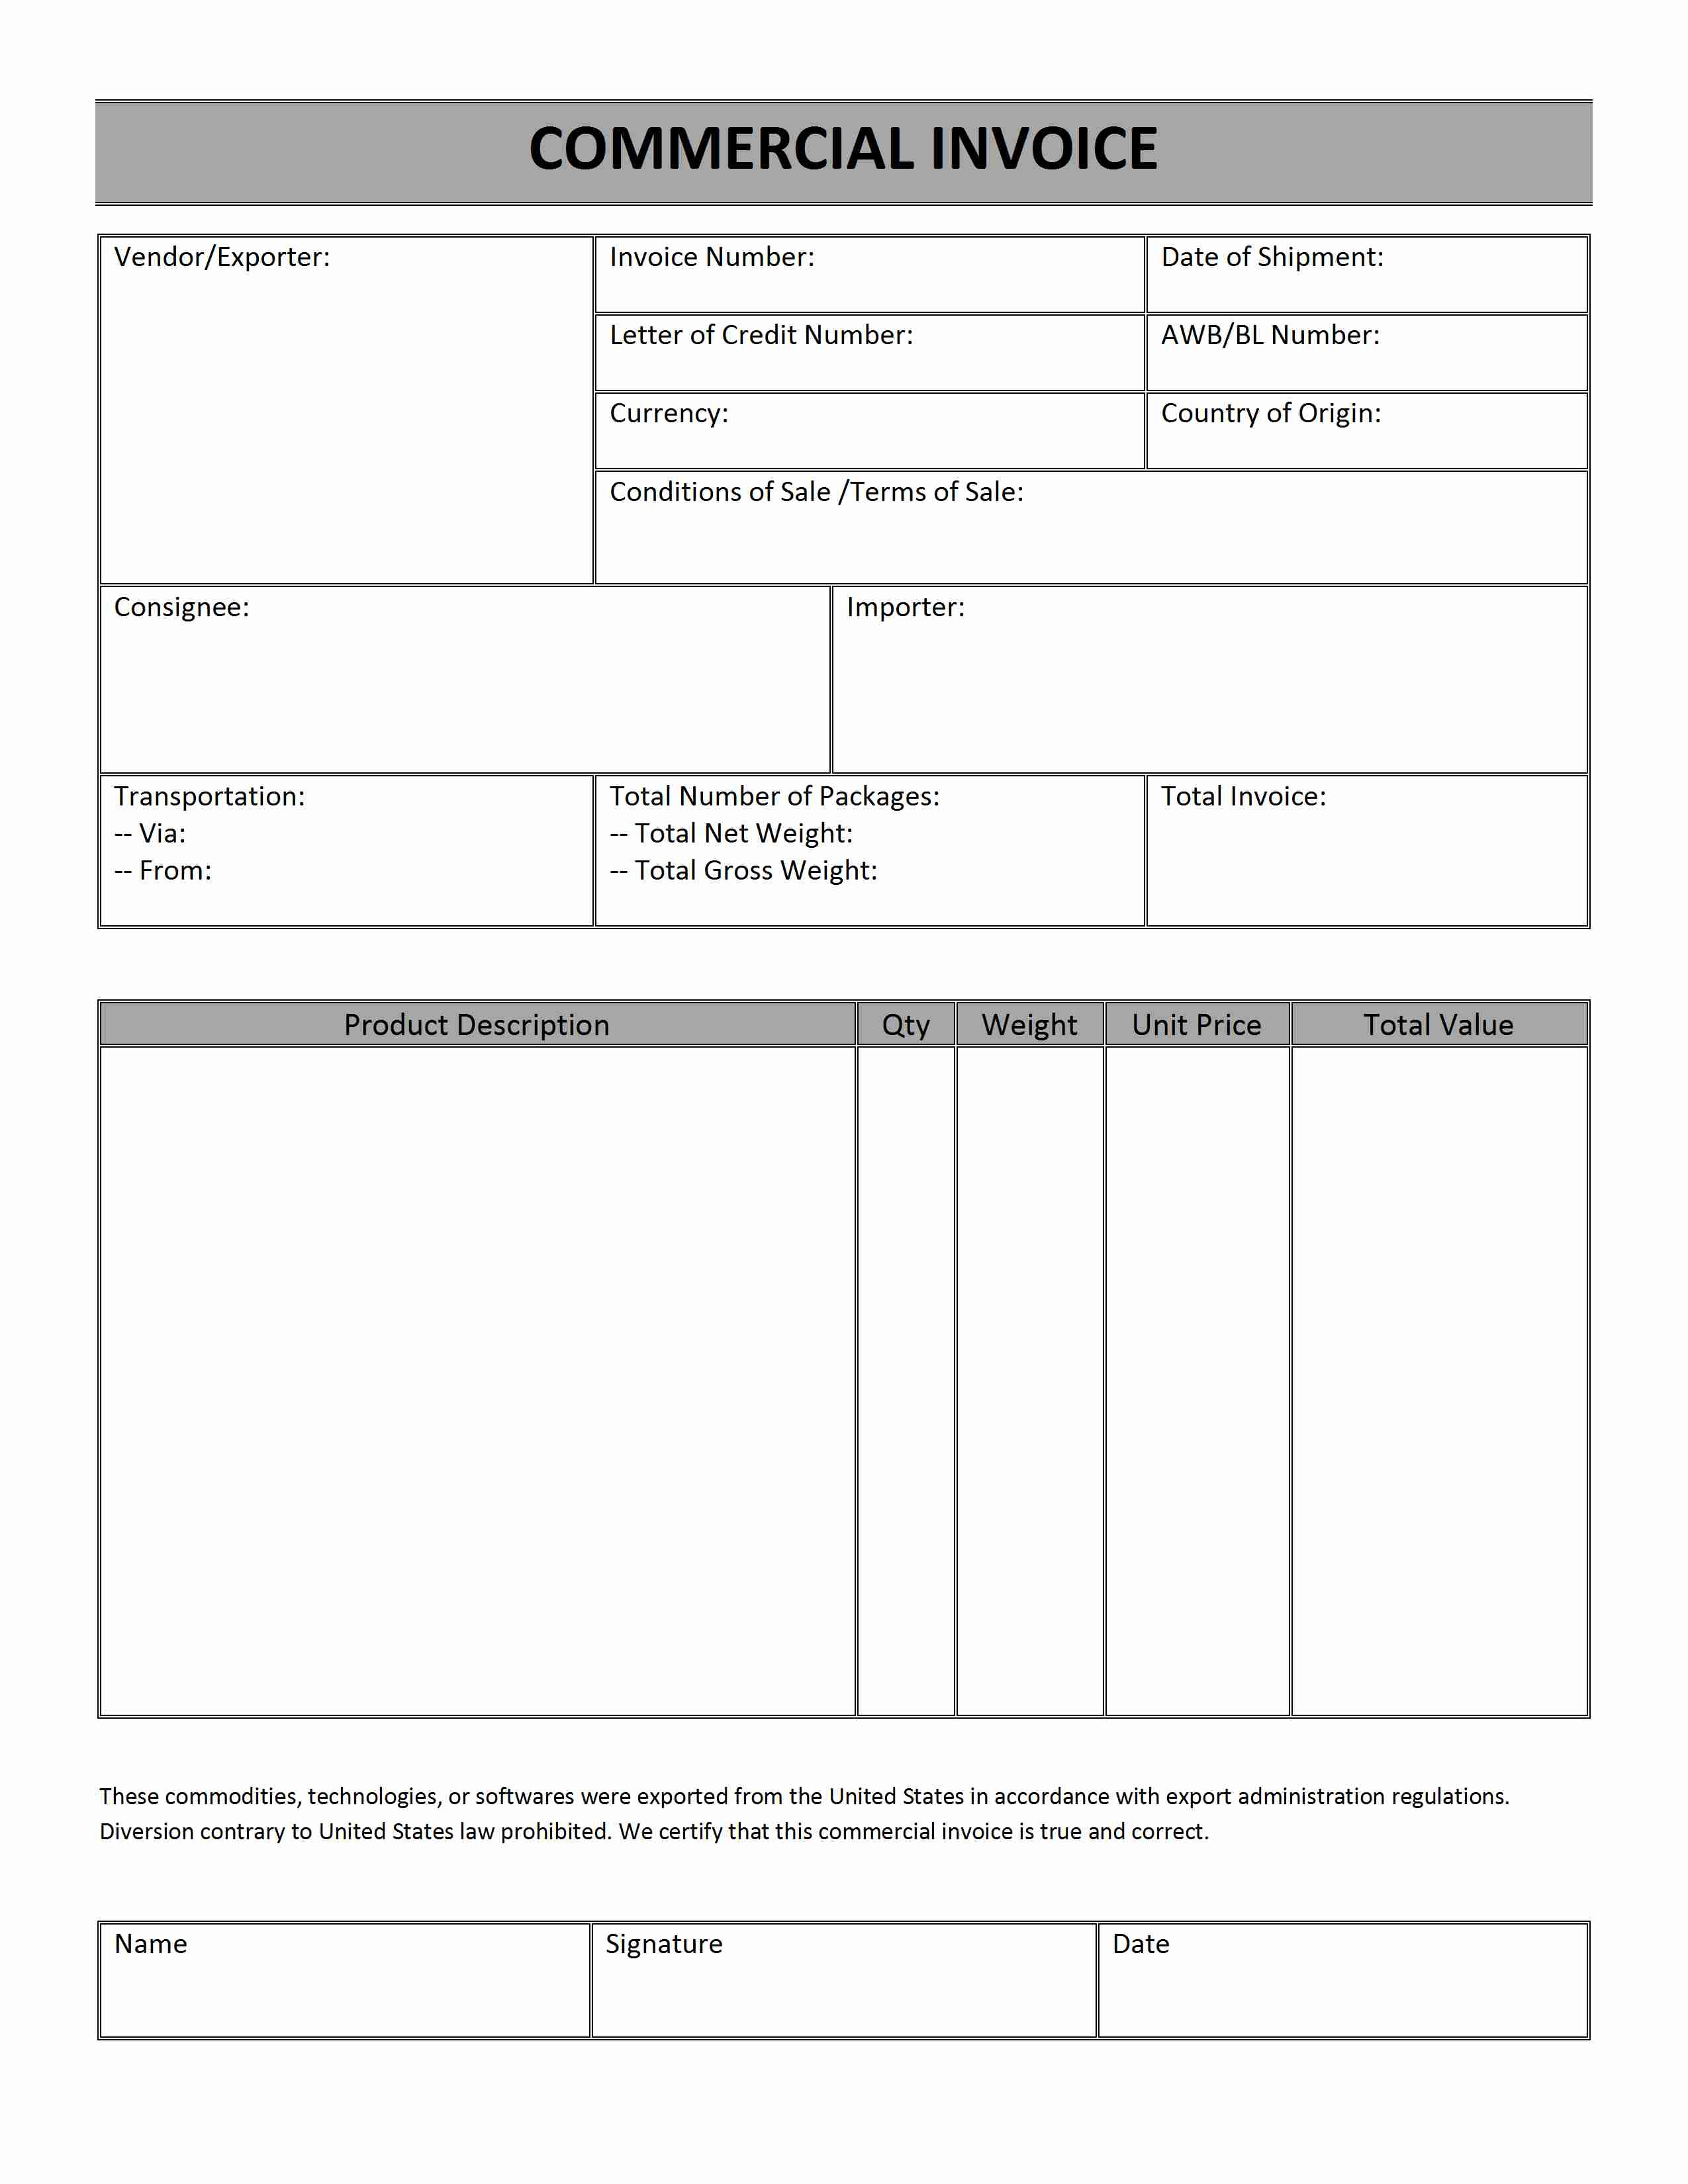 Pxworkoutfreeus  Prepossessing Printable Sales Invoice Simple Invoice Form Free Invoice  With Extraordinary Printable Receipt Free  Free Printable Raffle Tickets  Receipt   Printable With Comely Kia Optima Invoice Also Gst Tax Invoice Template In Addition What Is Meaning Of Invoice And Return To Invoice As Well As Invoice Template Download Excel Additionally Invoice Template Free Download Excel From Happytomco With Pxworkoutfreeus  Extraordinary Printable Sales Invoice Simple Invoice Form Free Invoice  With Comely Printable Receipt Free  Free Printable Raffle Tickets  Receipt   Printable And Prepossessing Kia Optima Invoice Also Gst Tax Invoice Template In Addition What Is Meaning Of Invoice From Happytomco